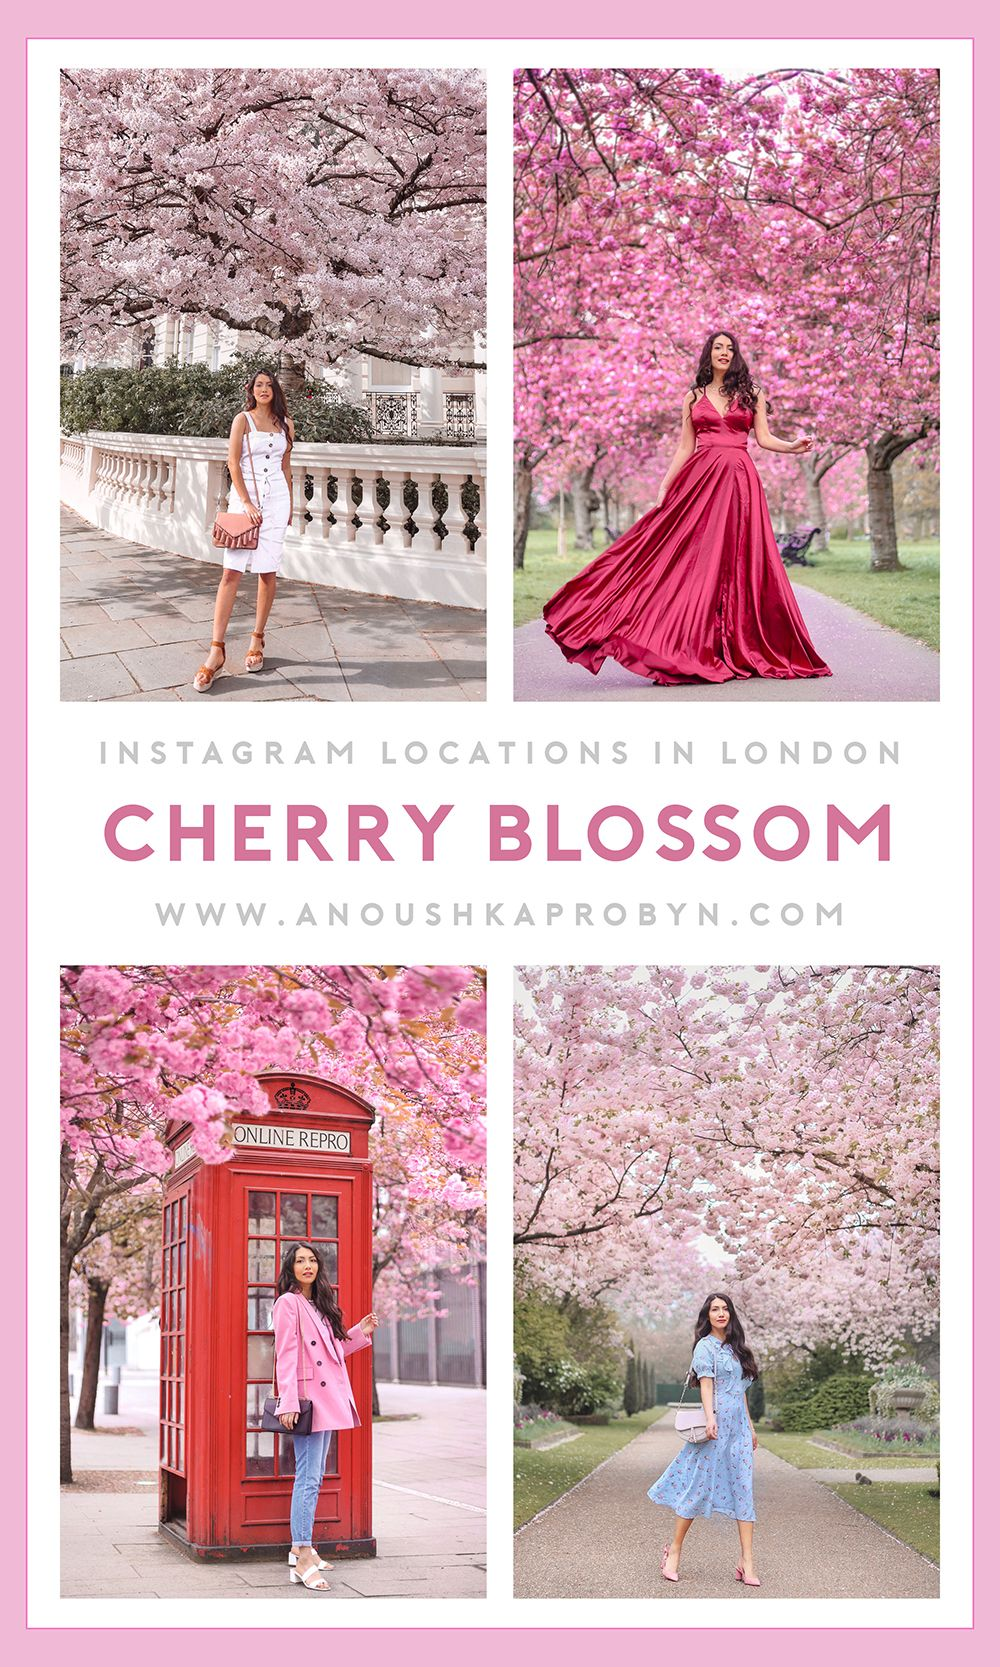 Cherry Blossom Instagram Locations In London Where To Spot Spring Blooms In The City Anoushka Probyn Instagram Locations Spring Blooms London Instagram